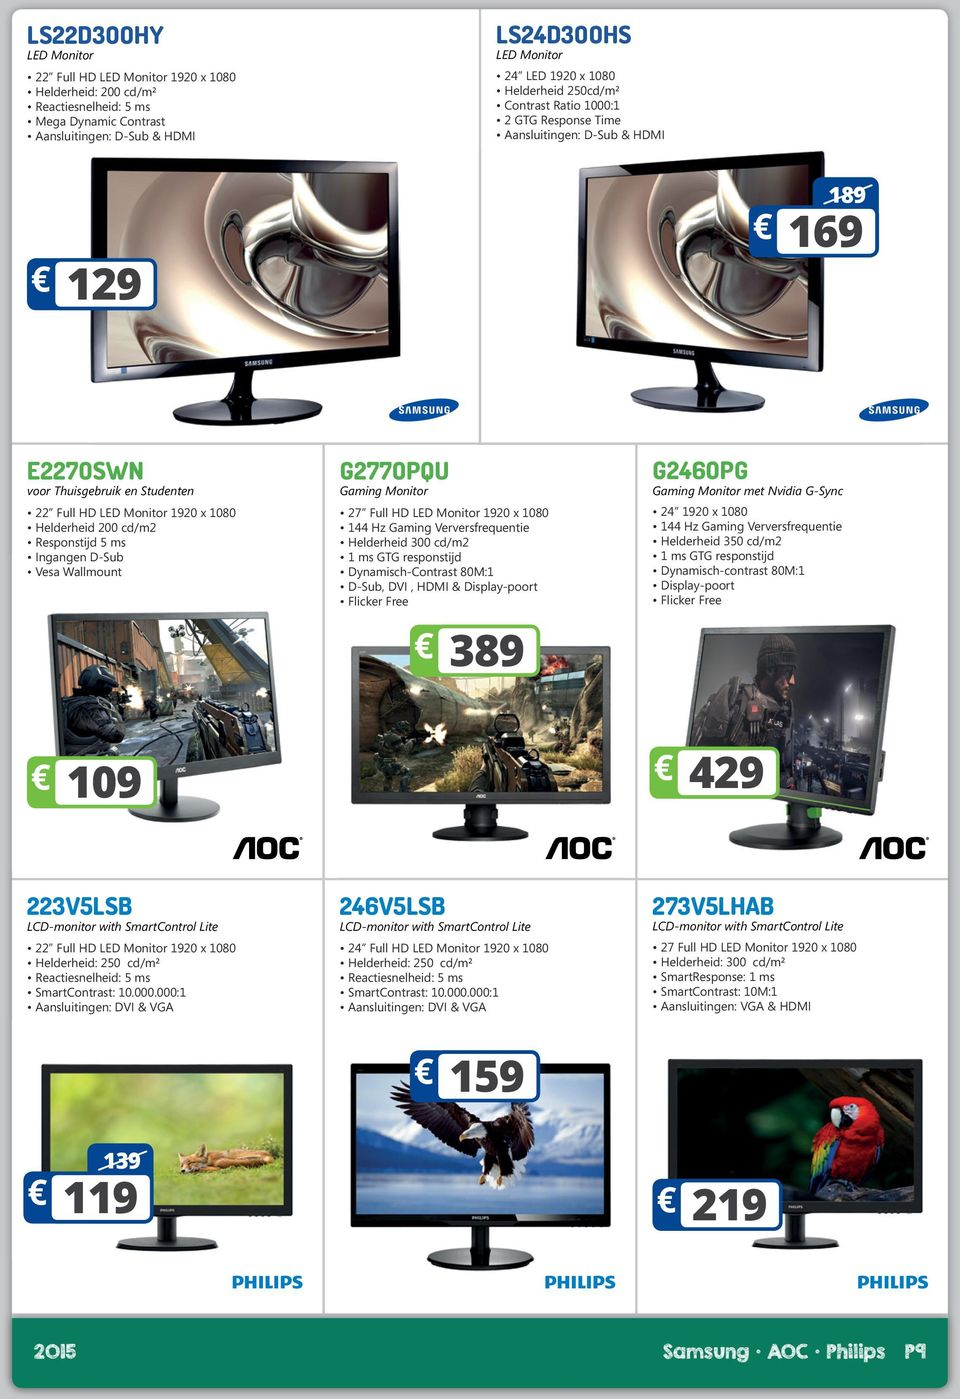 Vesa Wallmount G277OPQU Gaming Monitor 27 Full HD LED Monitor 1920 x 1080 144 Hz Gaming Verversfrequentie Helderheid 300 cd/m2 1 ms GTG responstijd Dynamisch-Contrast 80M:1 D-Sub, DVI, HDMI &